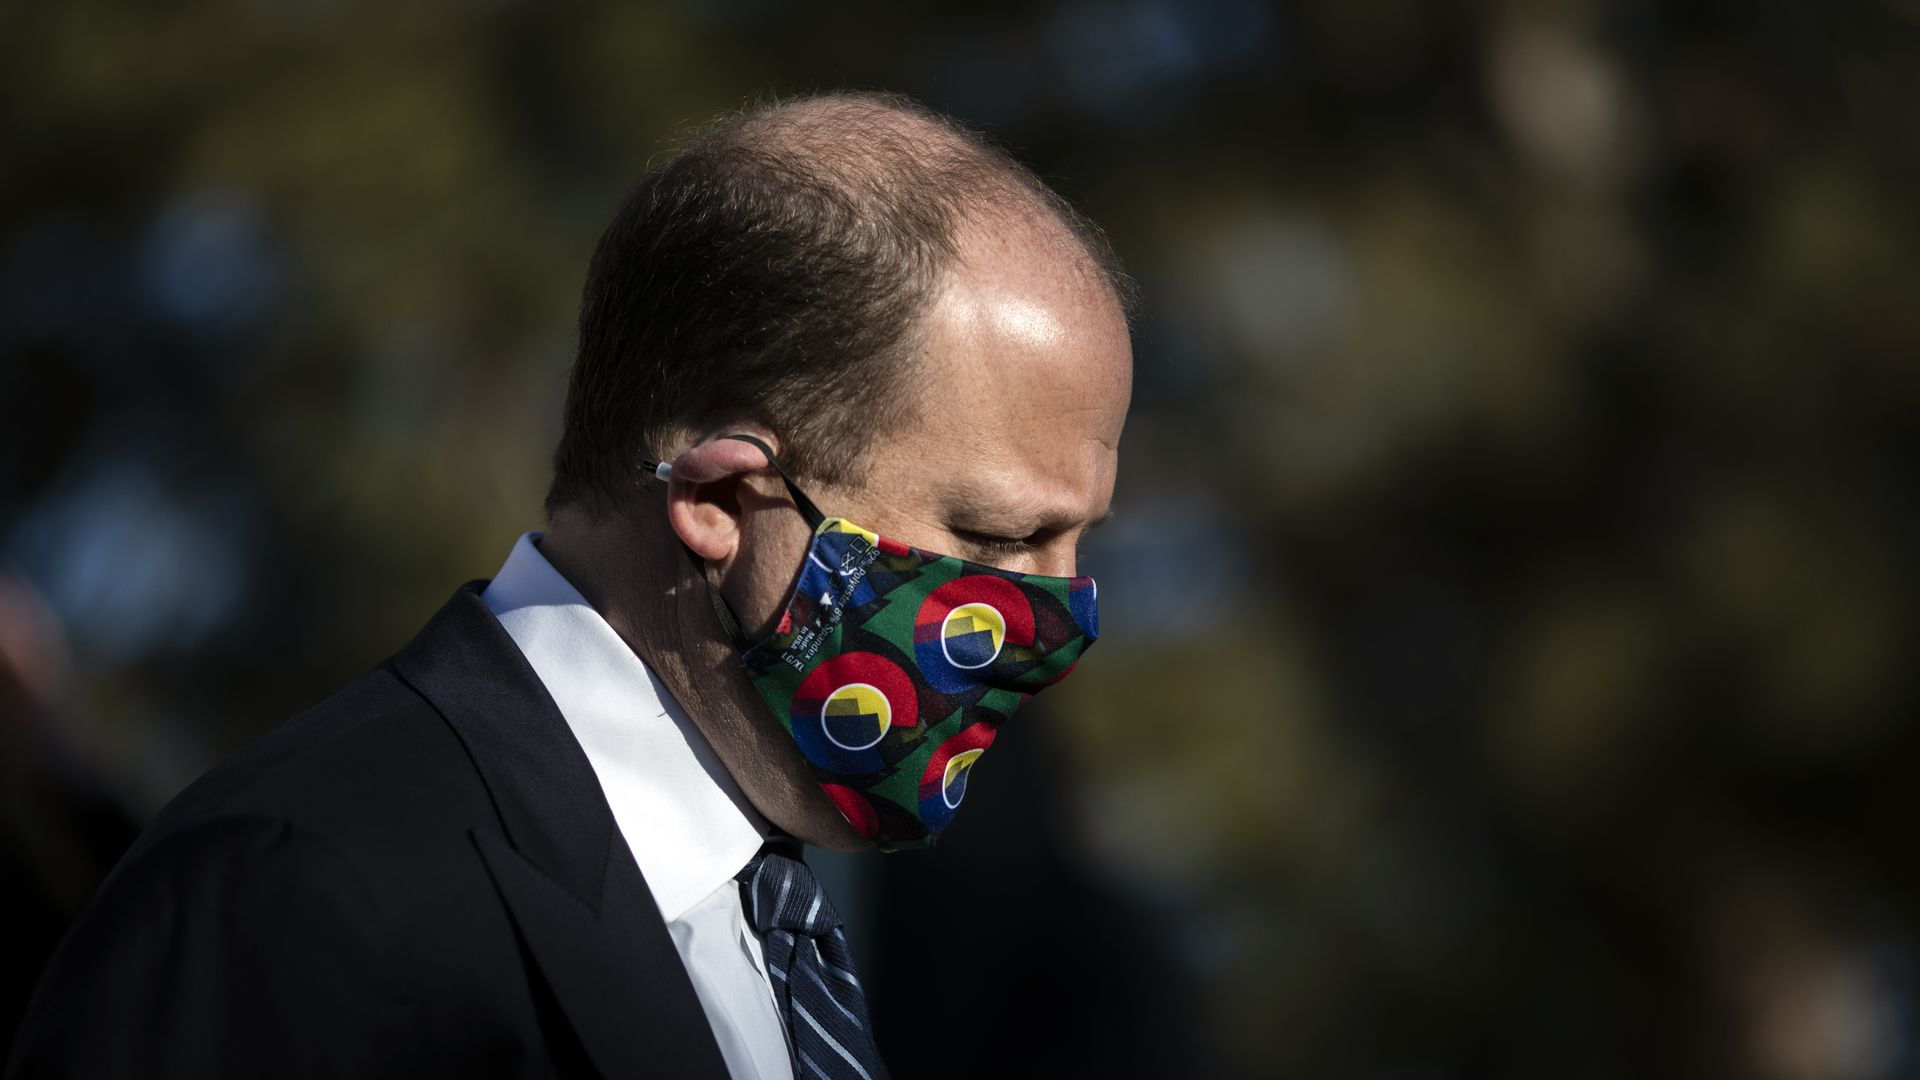 Photo of Jared Polis in a black suit and a face mask that displays the Colorado seal